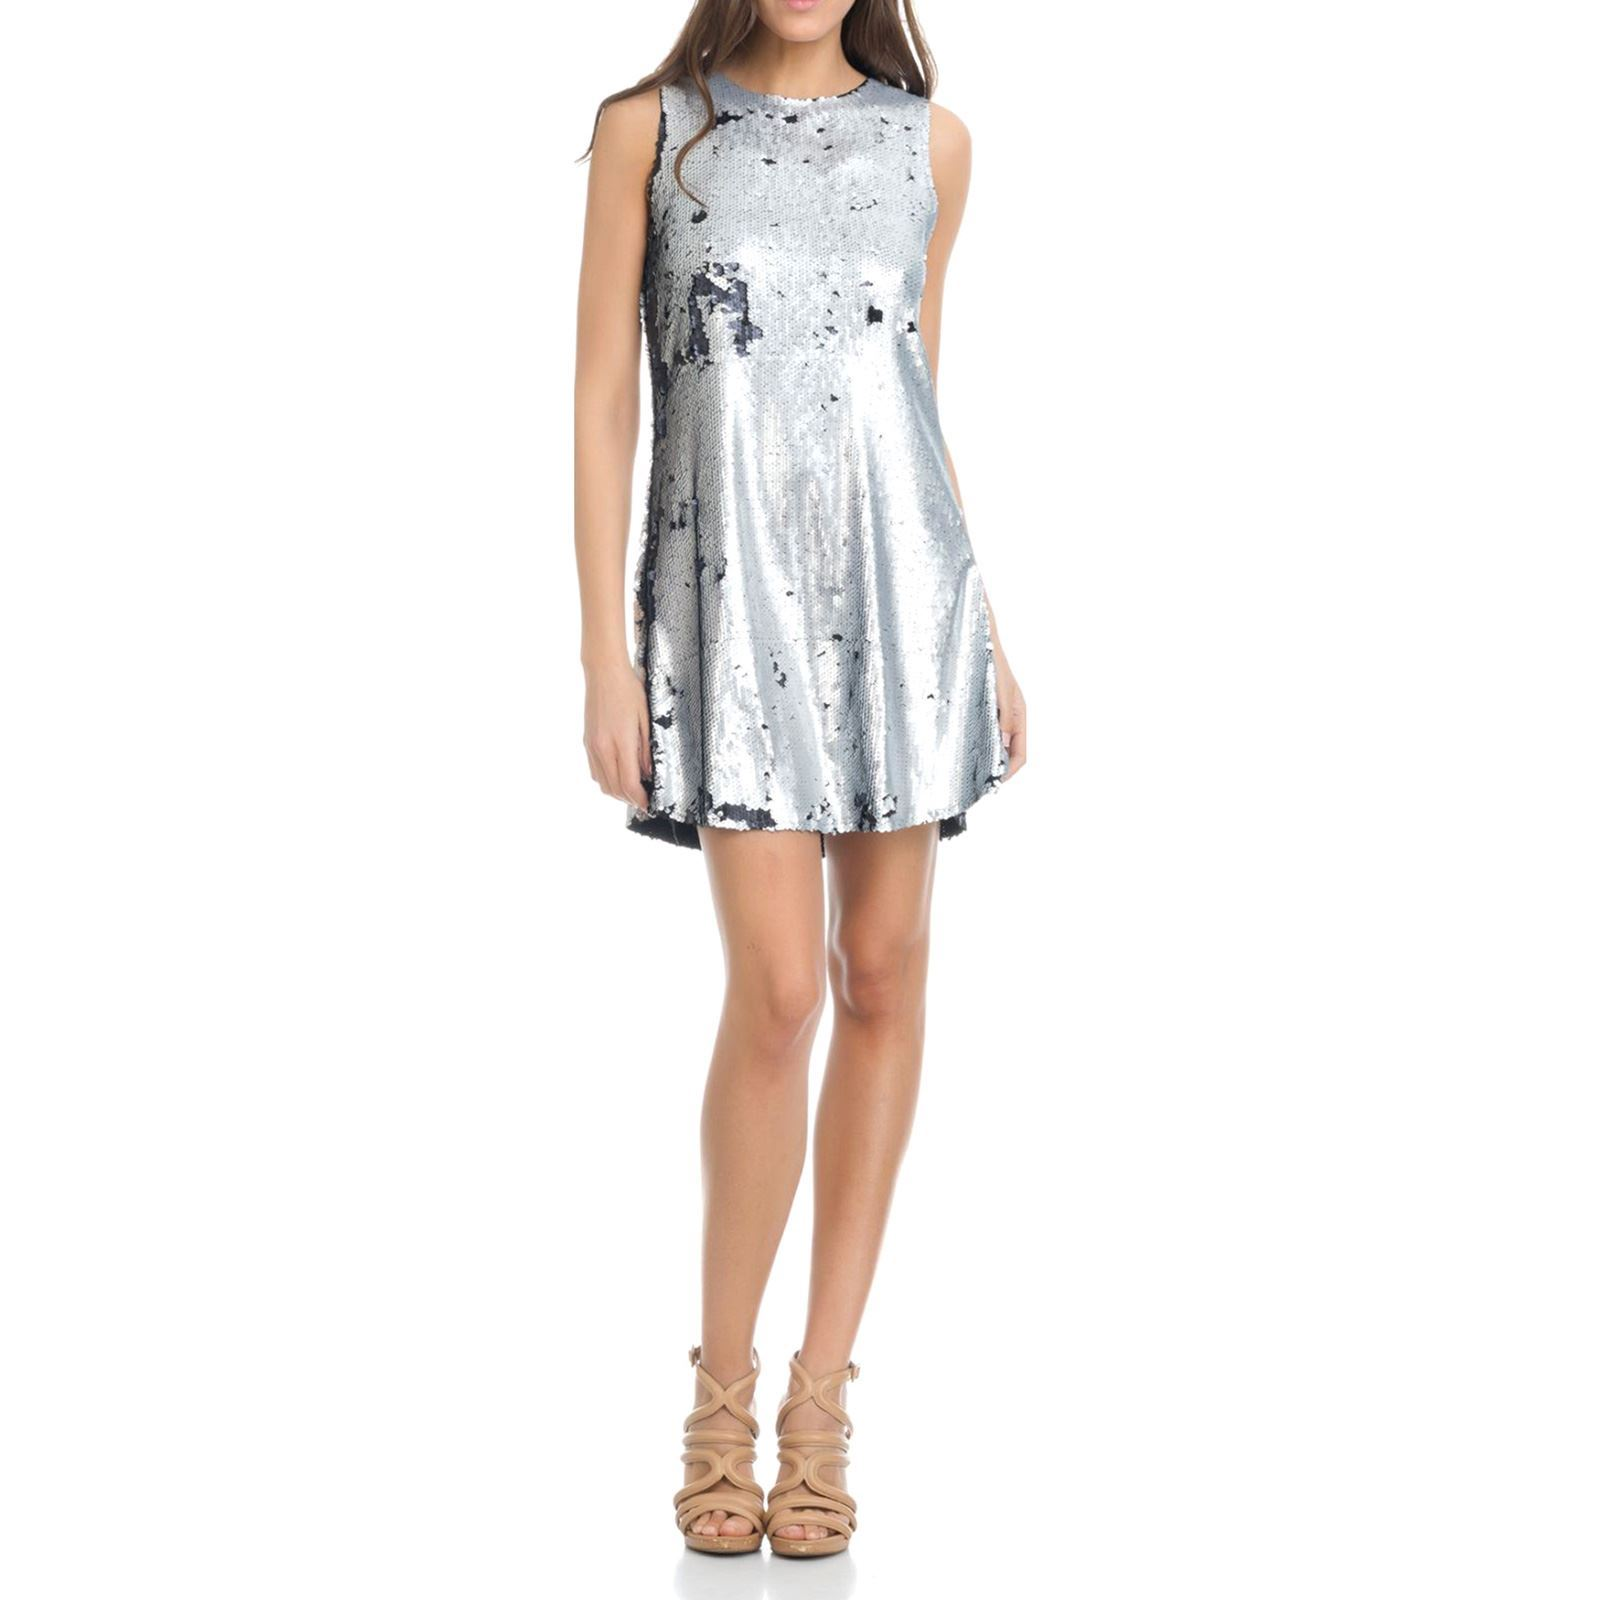 Chic By Tantra Robe droite - argent   BrandAlley 3450975ee1d